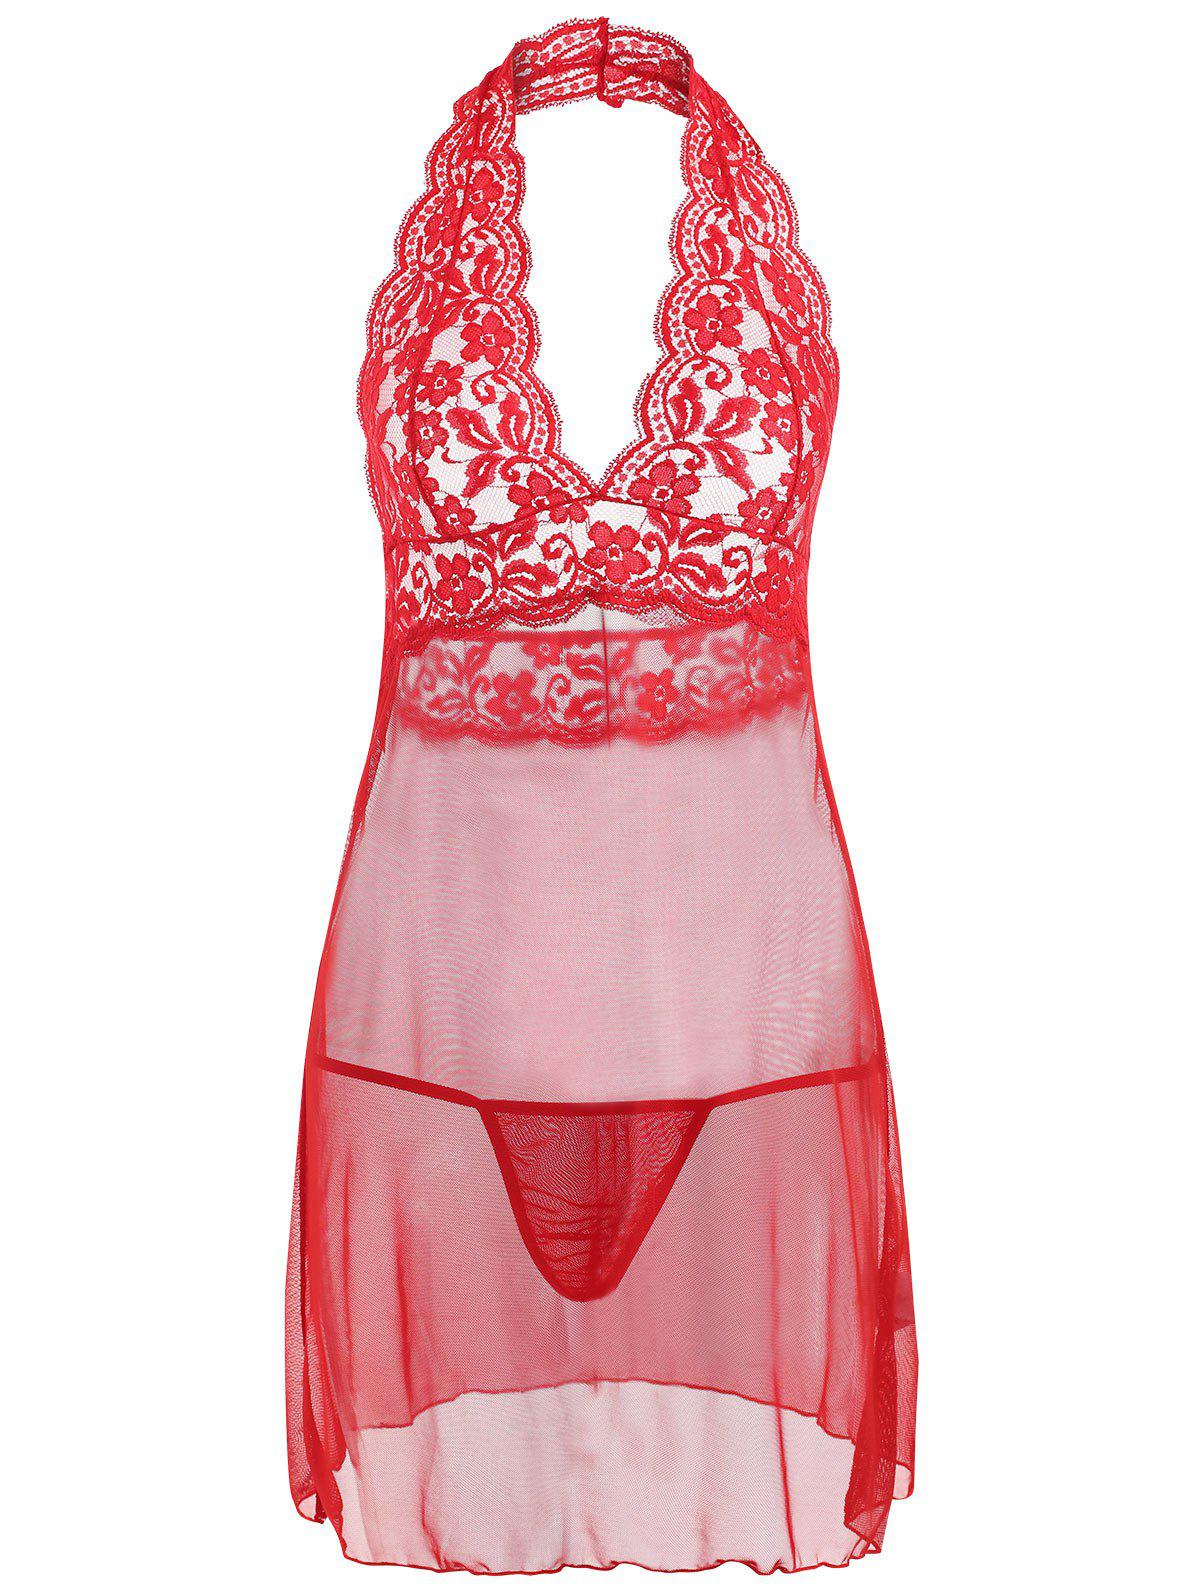 Halter Lace Mesh Low Back Babydoll - RED S